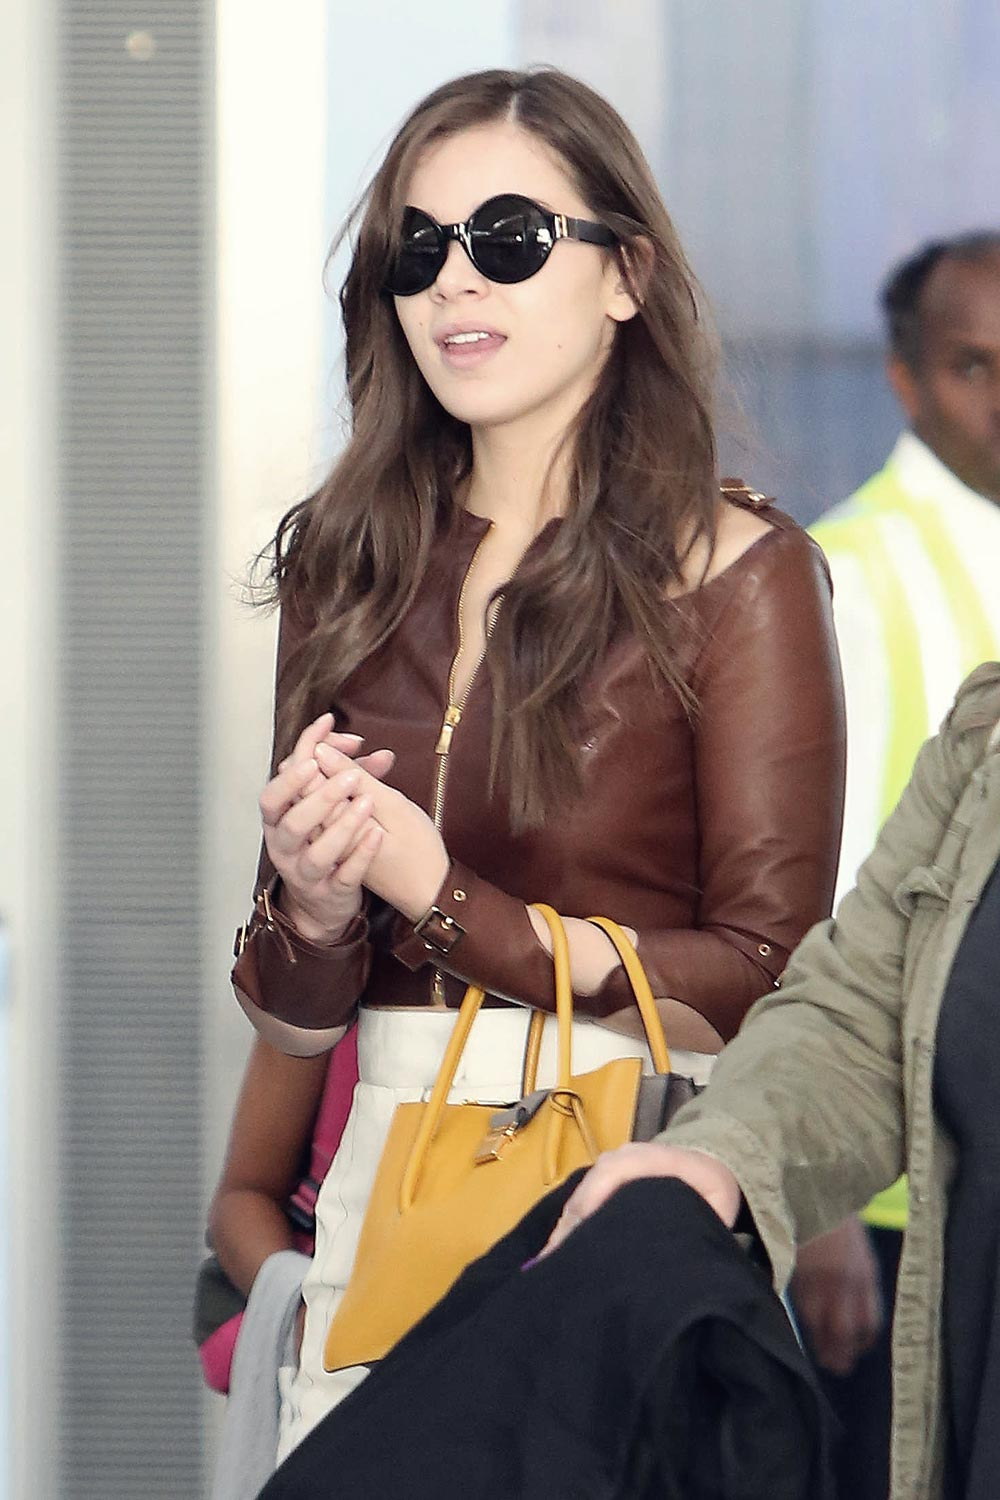 Hailee Steinfeld at Pearson International Airport